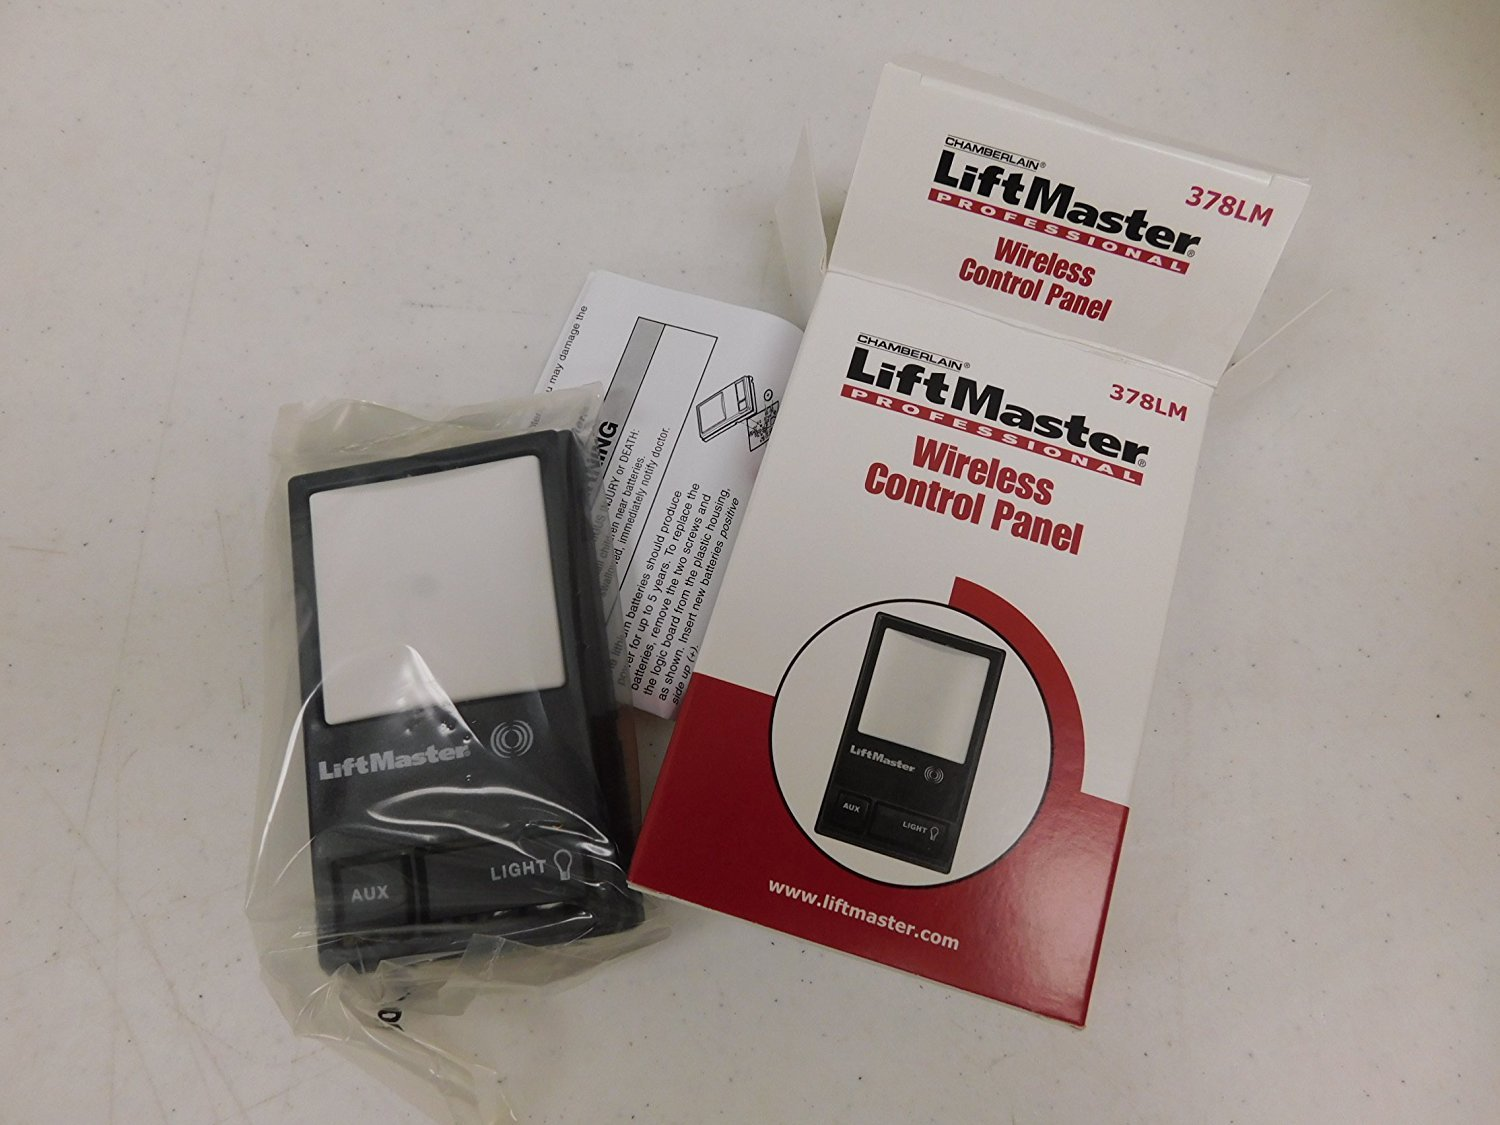 Liftmaster 378LM 315MHz Wireless Secondary Control Panel - Garage Door  Remote Controls - Amazon.com